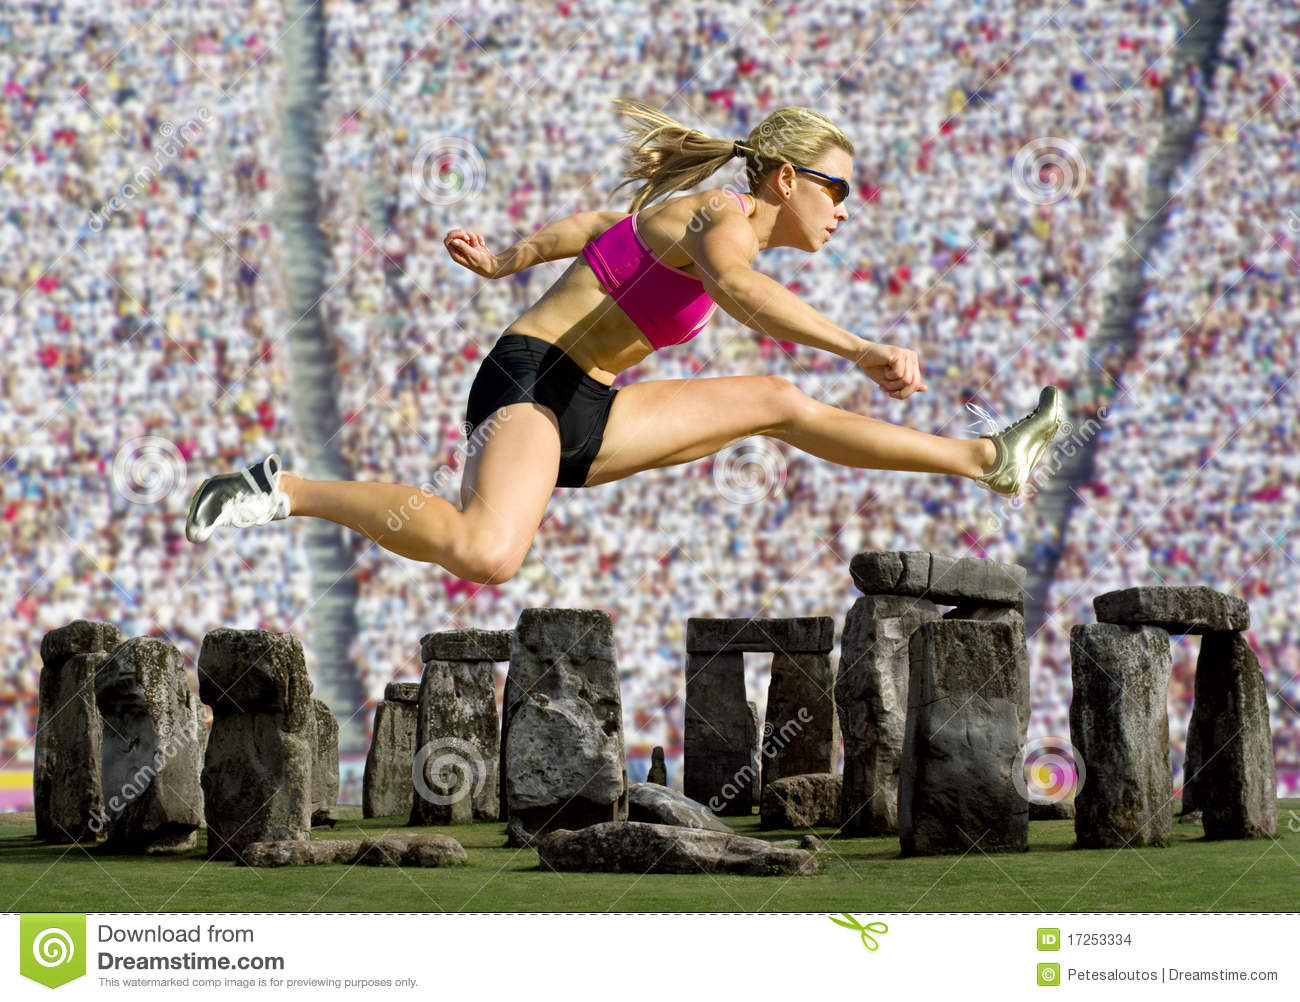 Athlete Jumps Over Stonehenge with a Crowd